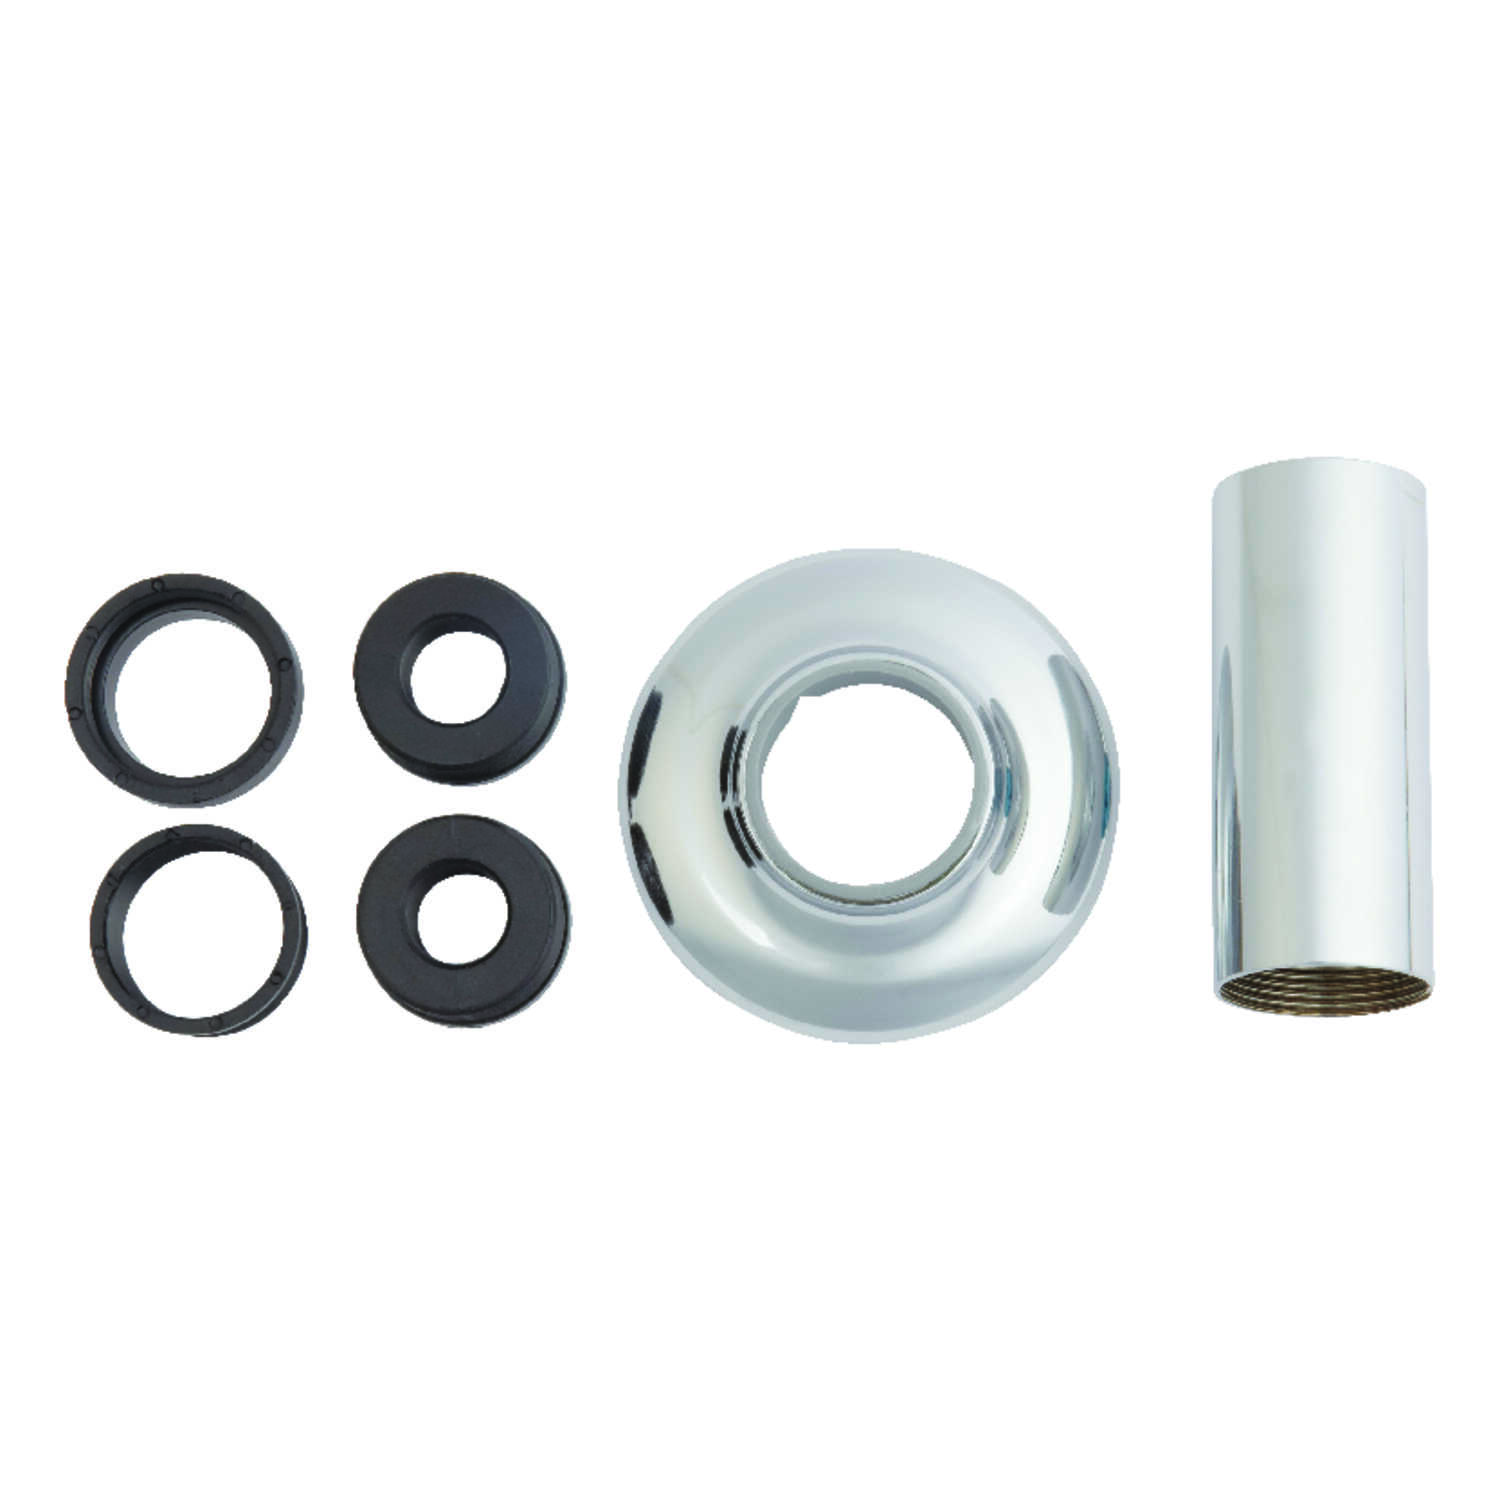 Ace  Brass  Tube and Flange For Tub/Shower Faucet  1.25 in.